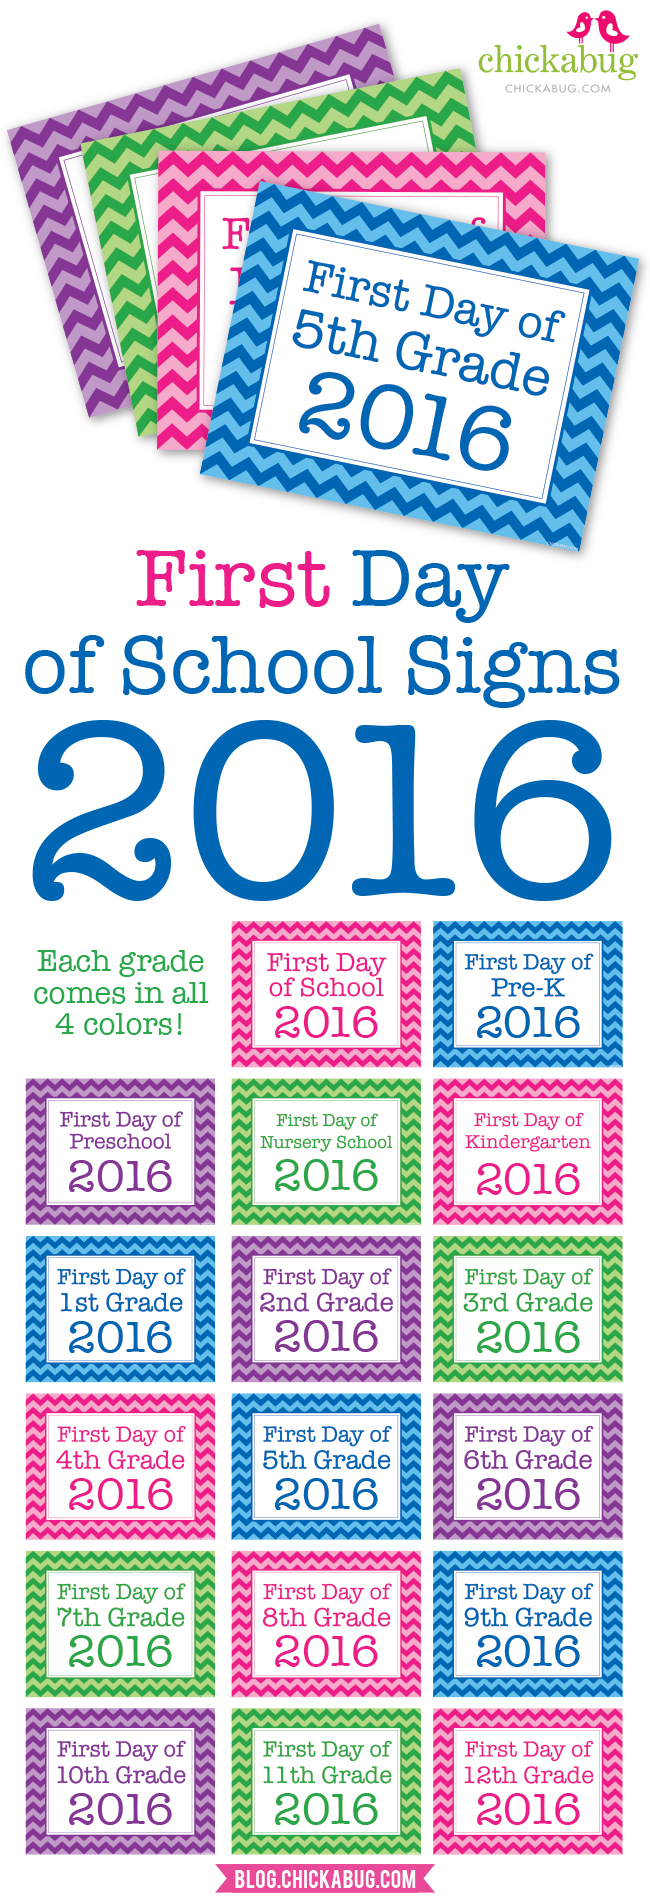 Free Printable First Day Of School Signs 2016 | Chickabug - Free Printable First Day Of School Signs